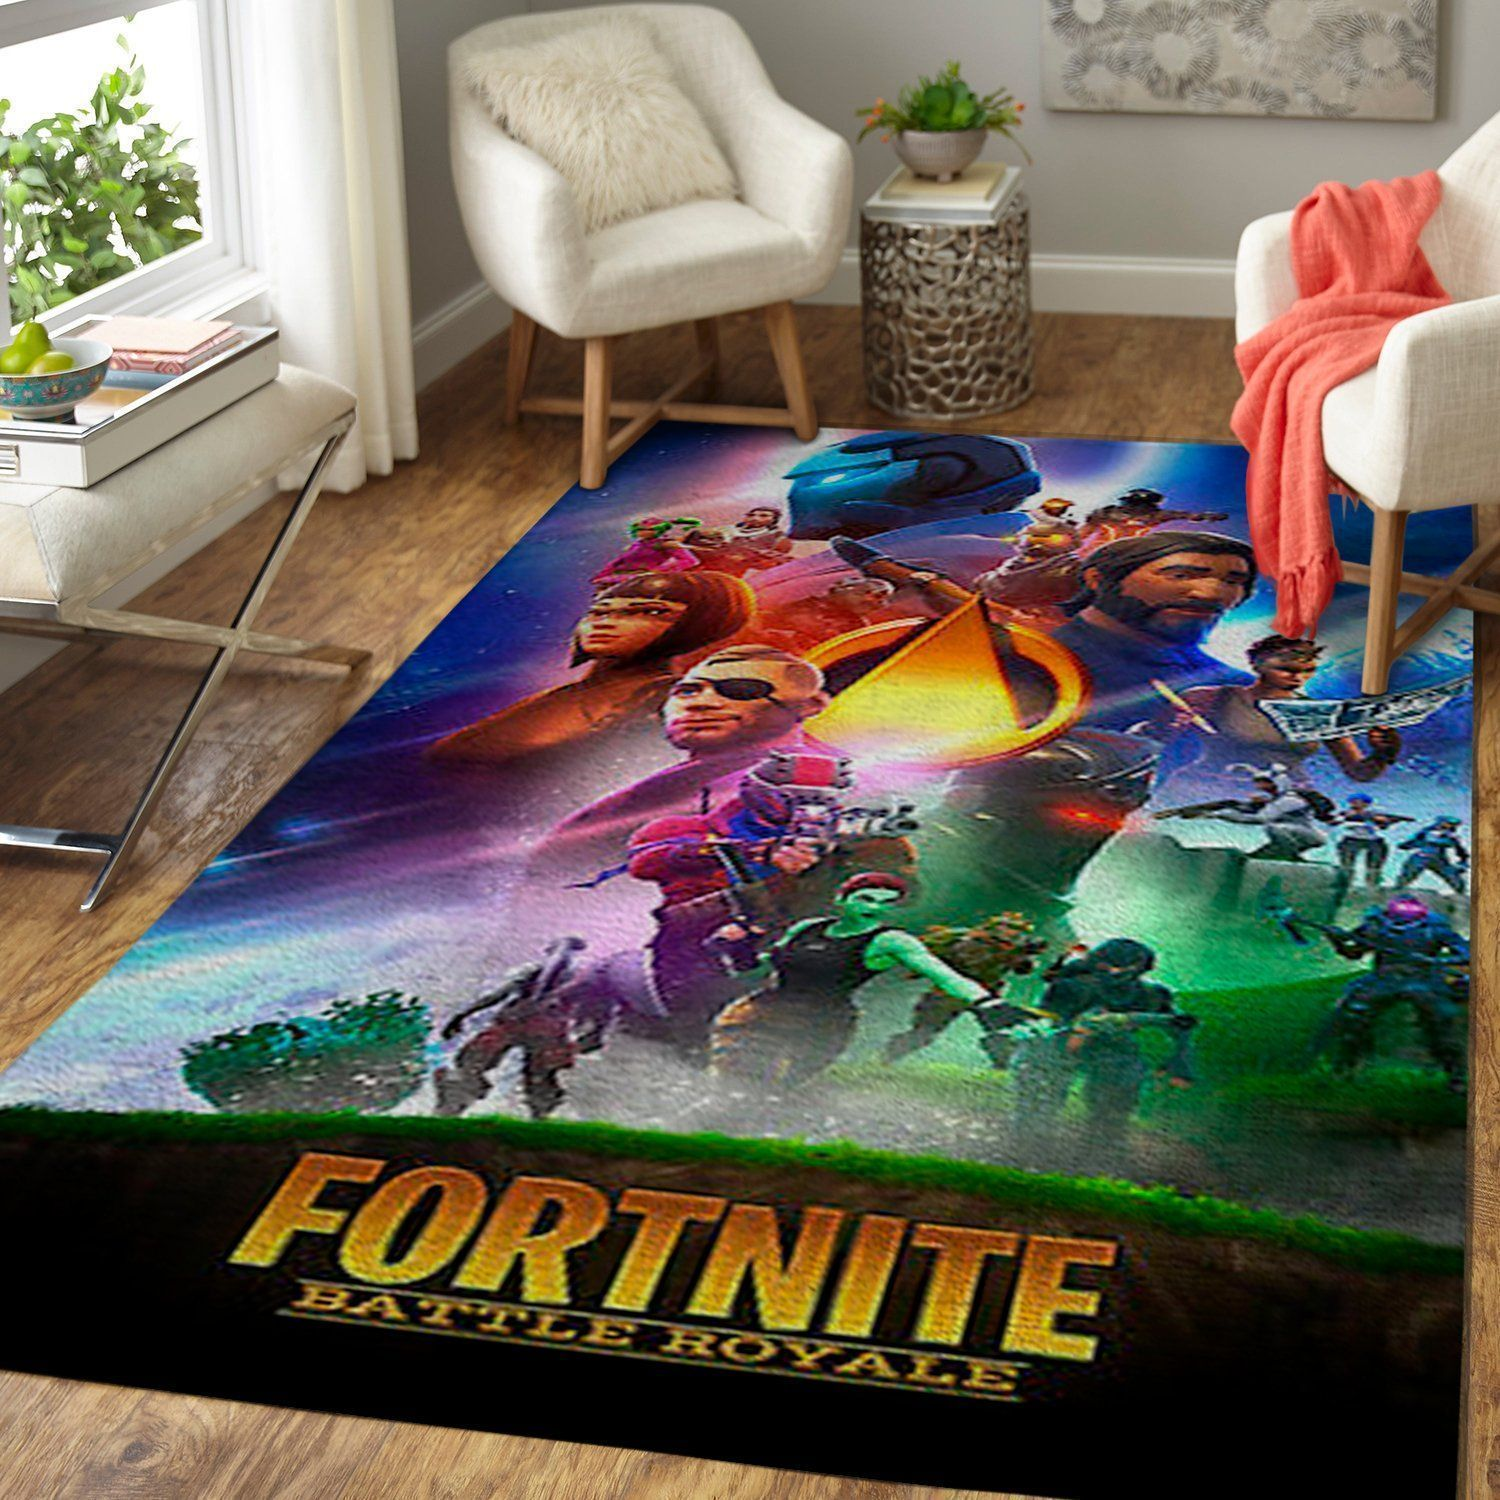 Fortnite Area Rug Video Game Carpet, Gamer Living Room Rugs, Floor Decor 1910184